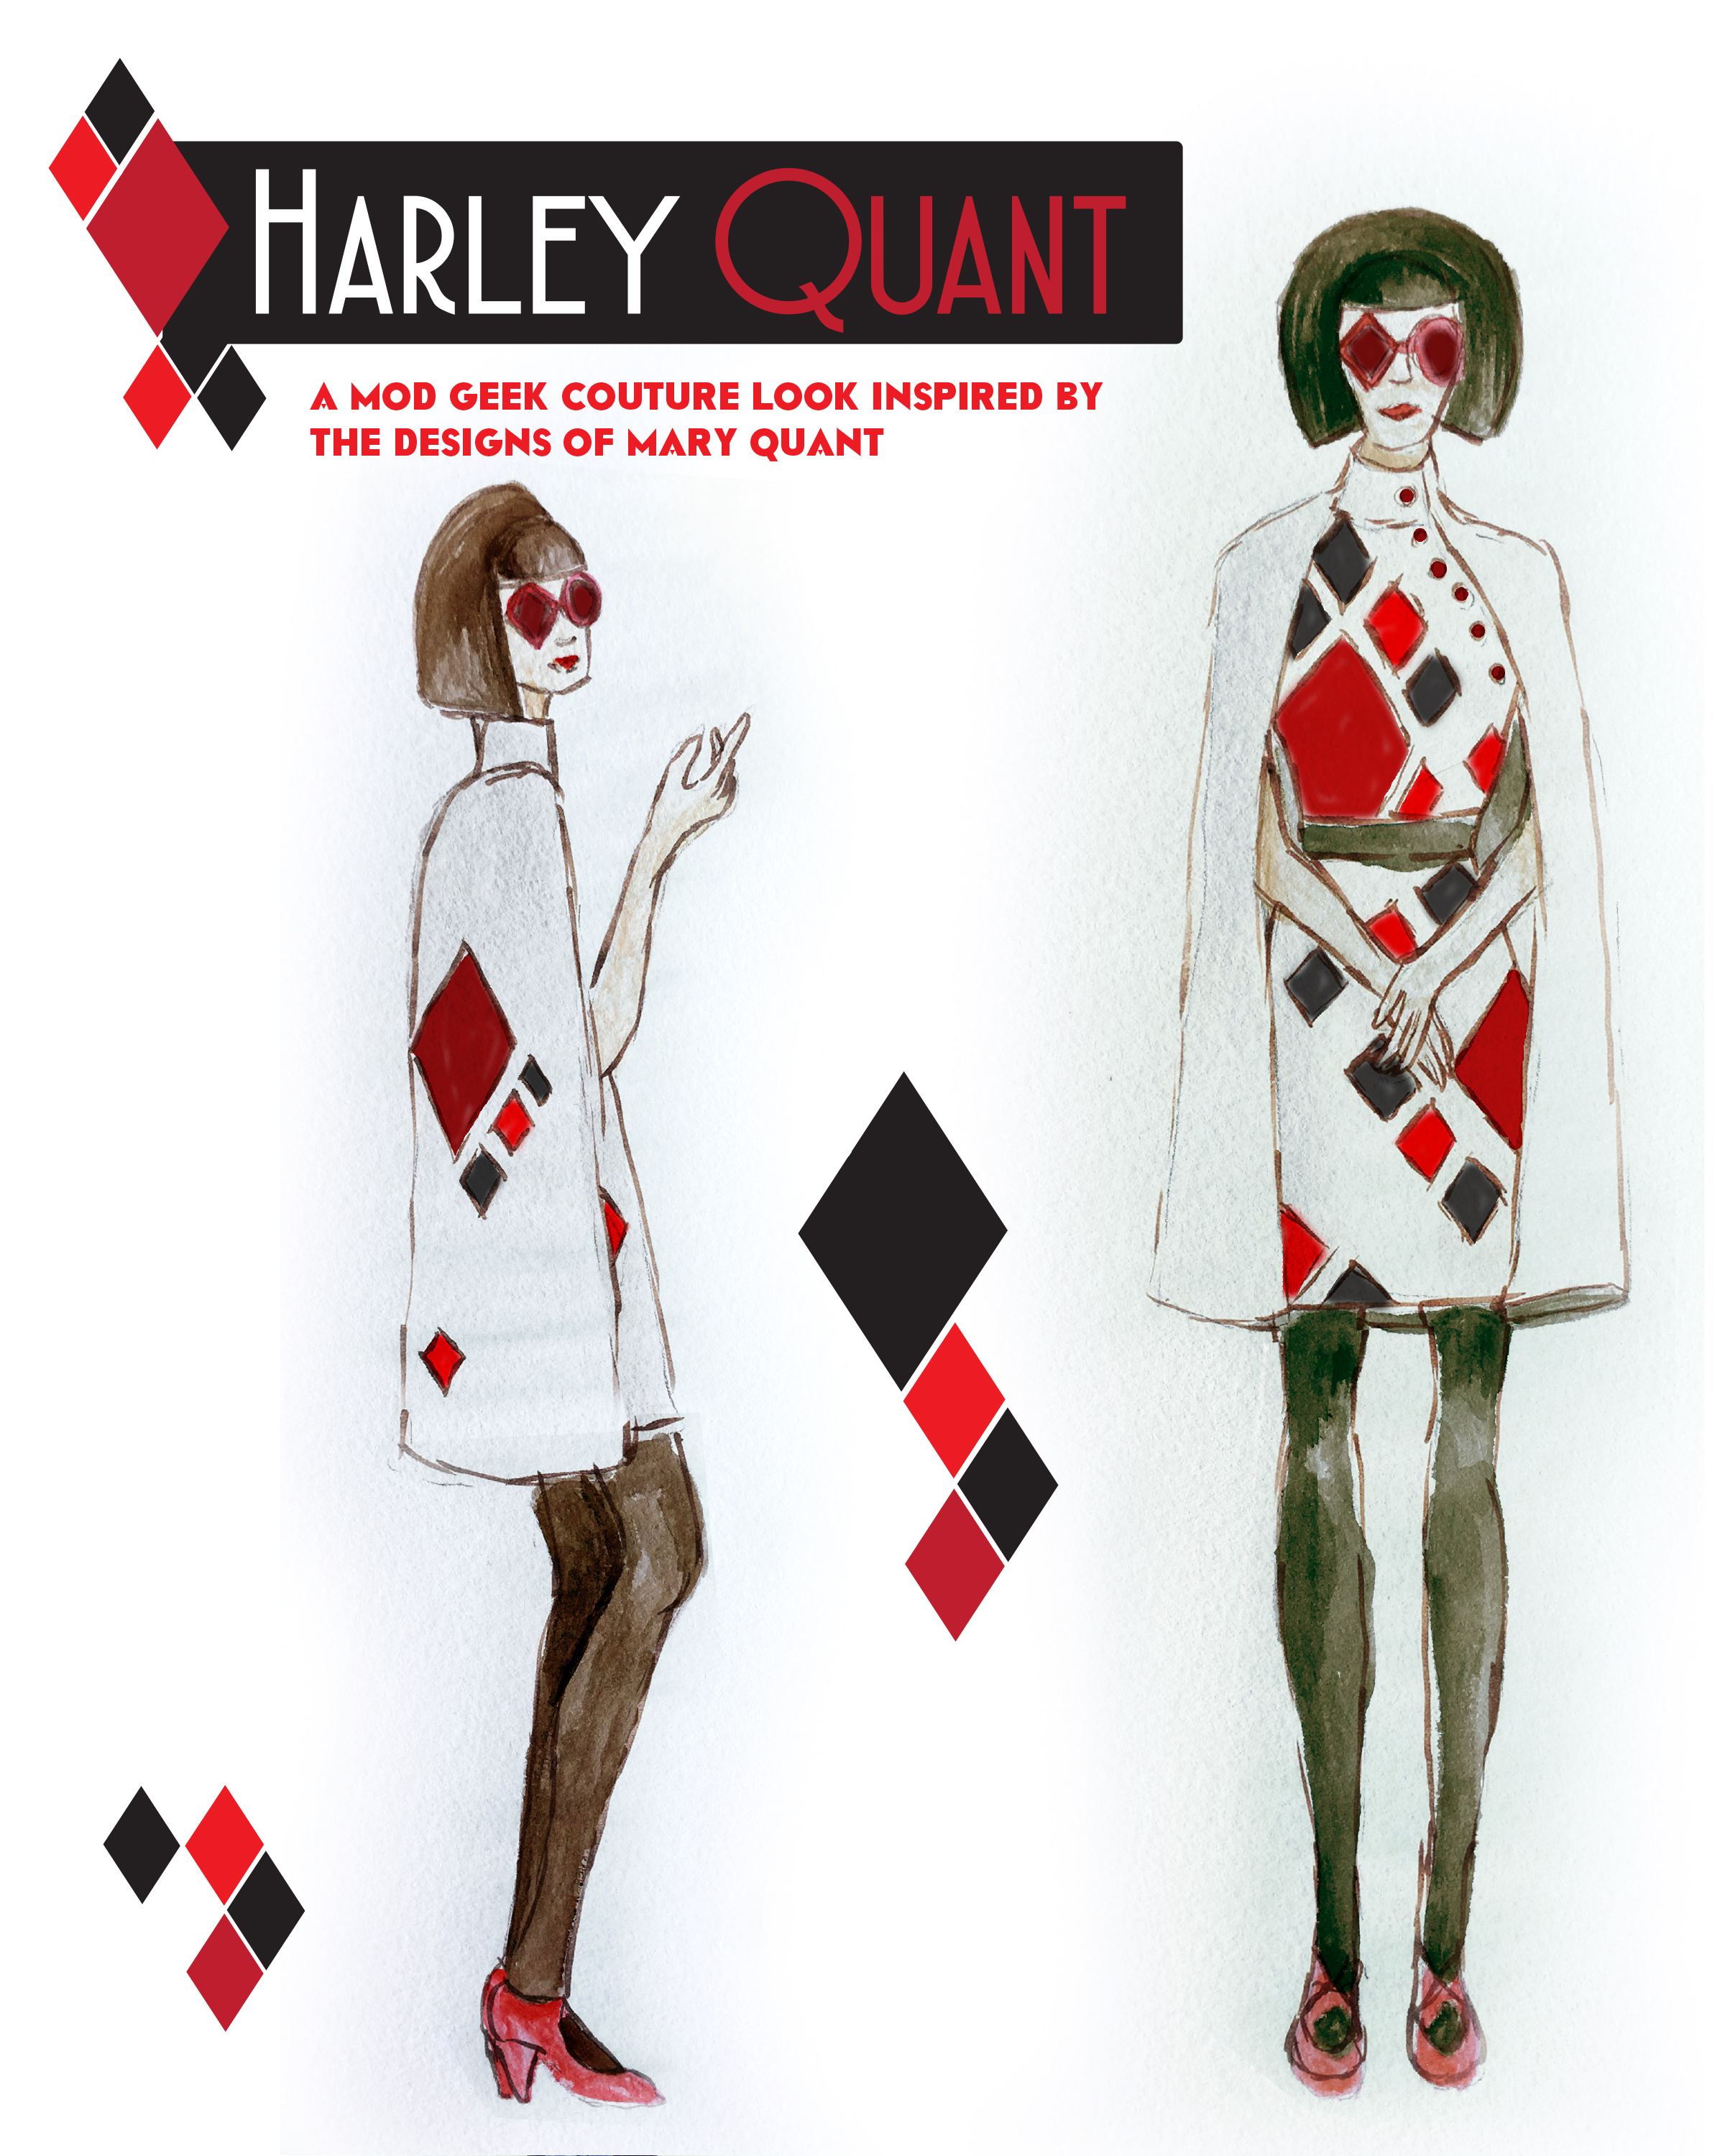 My 2016 rejected design, Harley Quant inspired by Harley Quinn